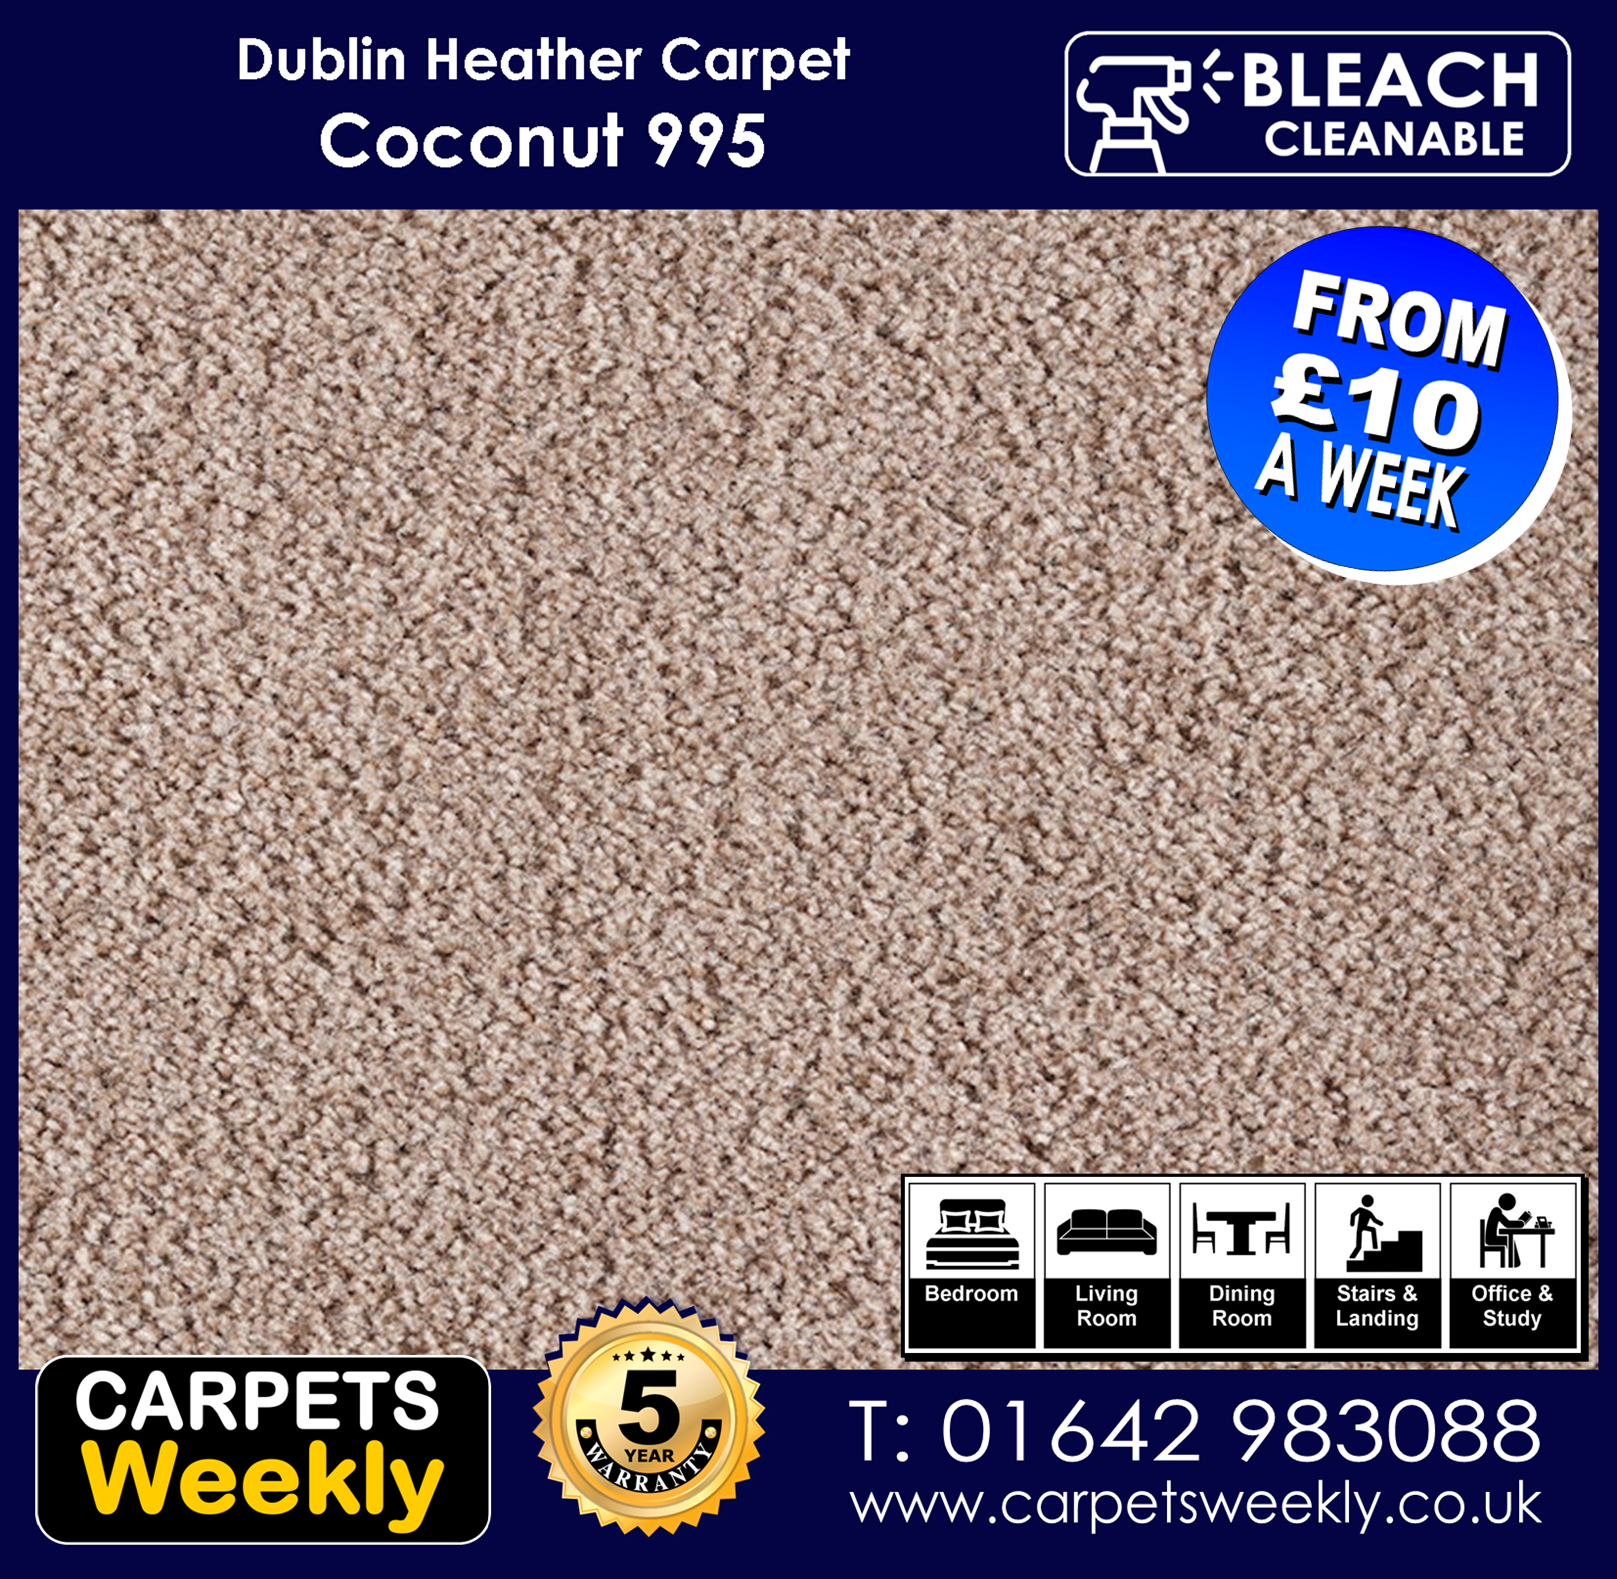 Carpets Weekly Dublin Heather Coconut 995  mid range carpet